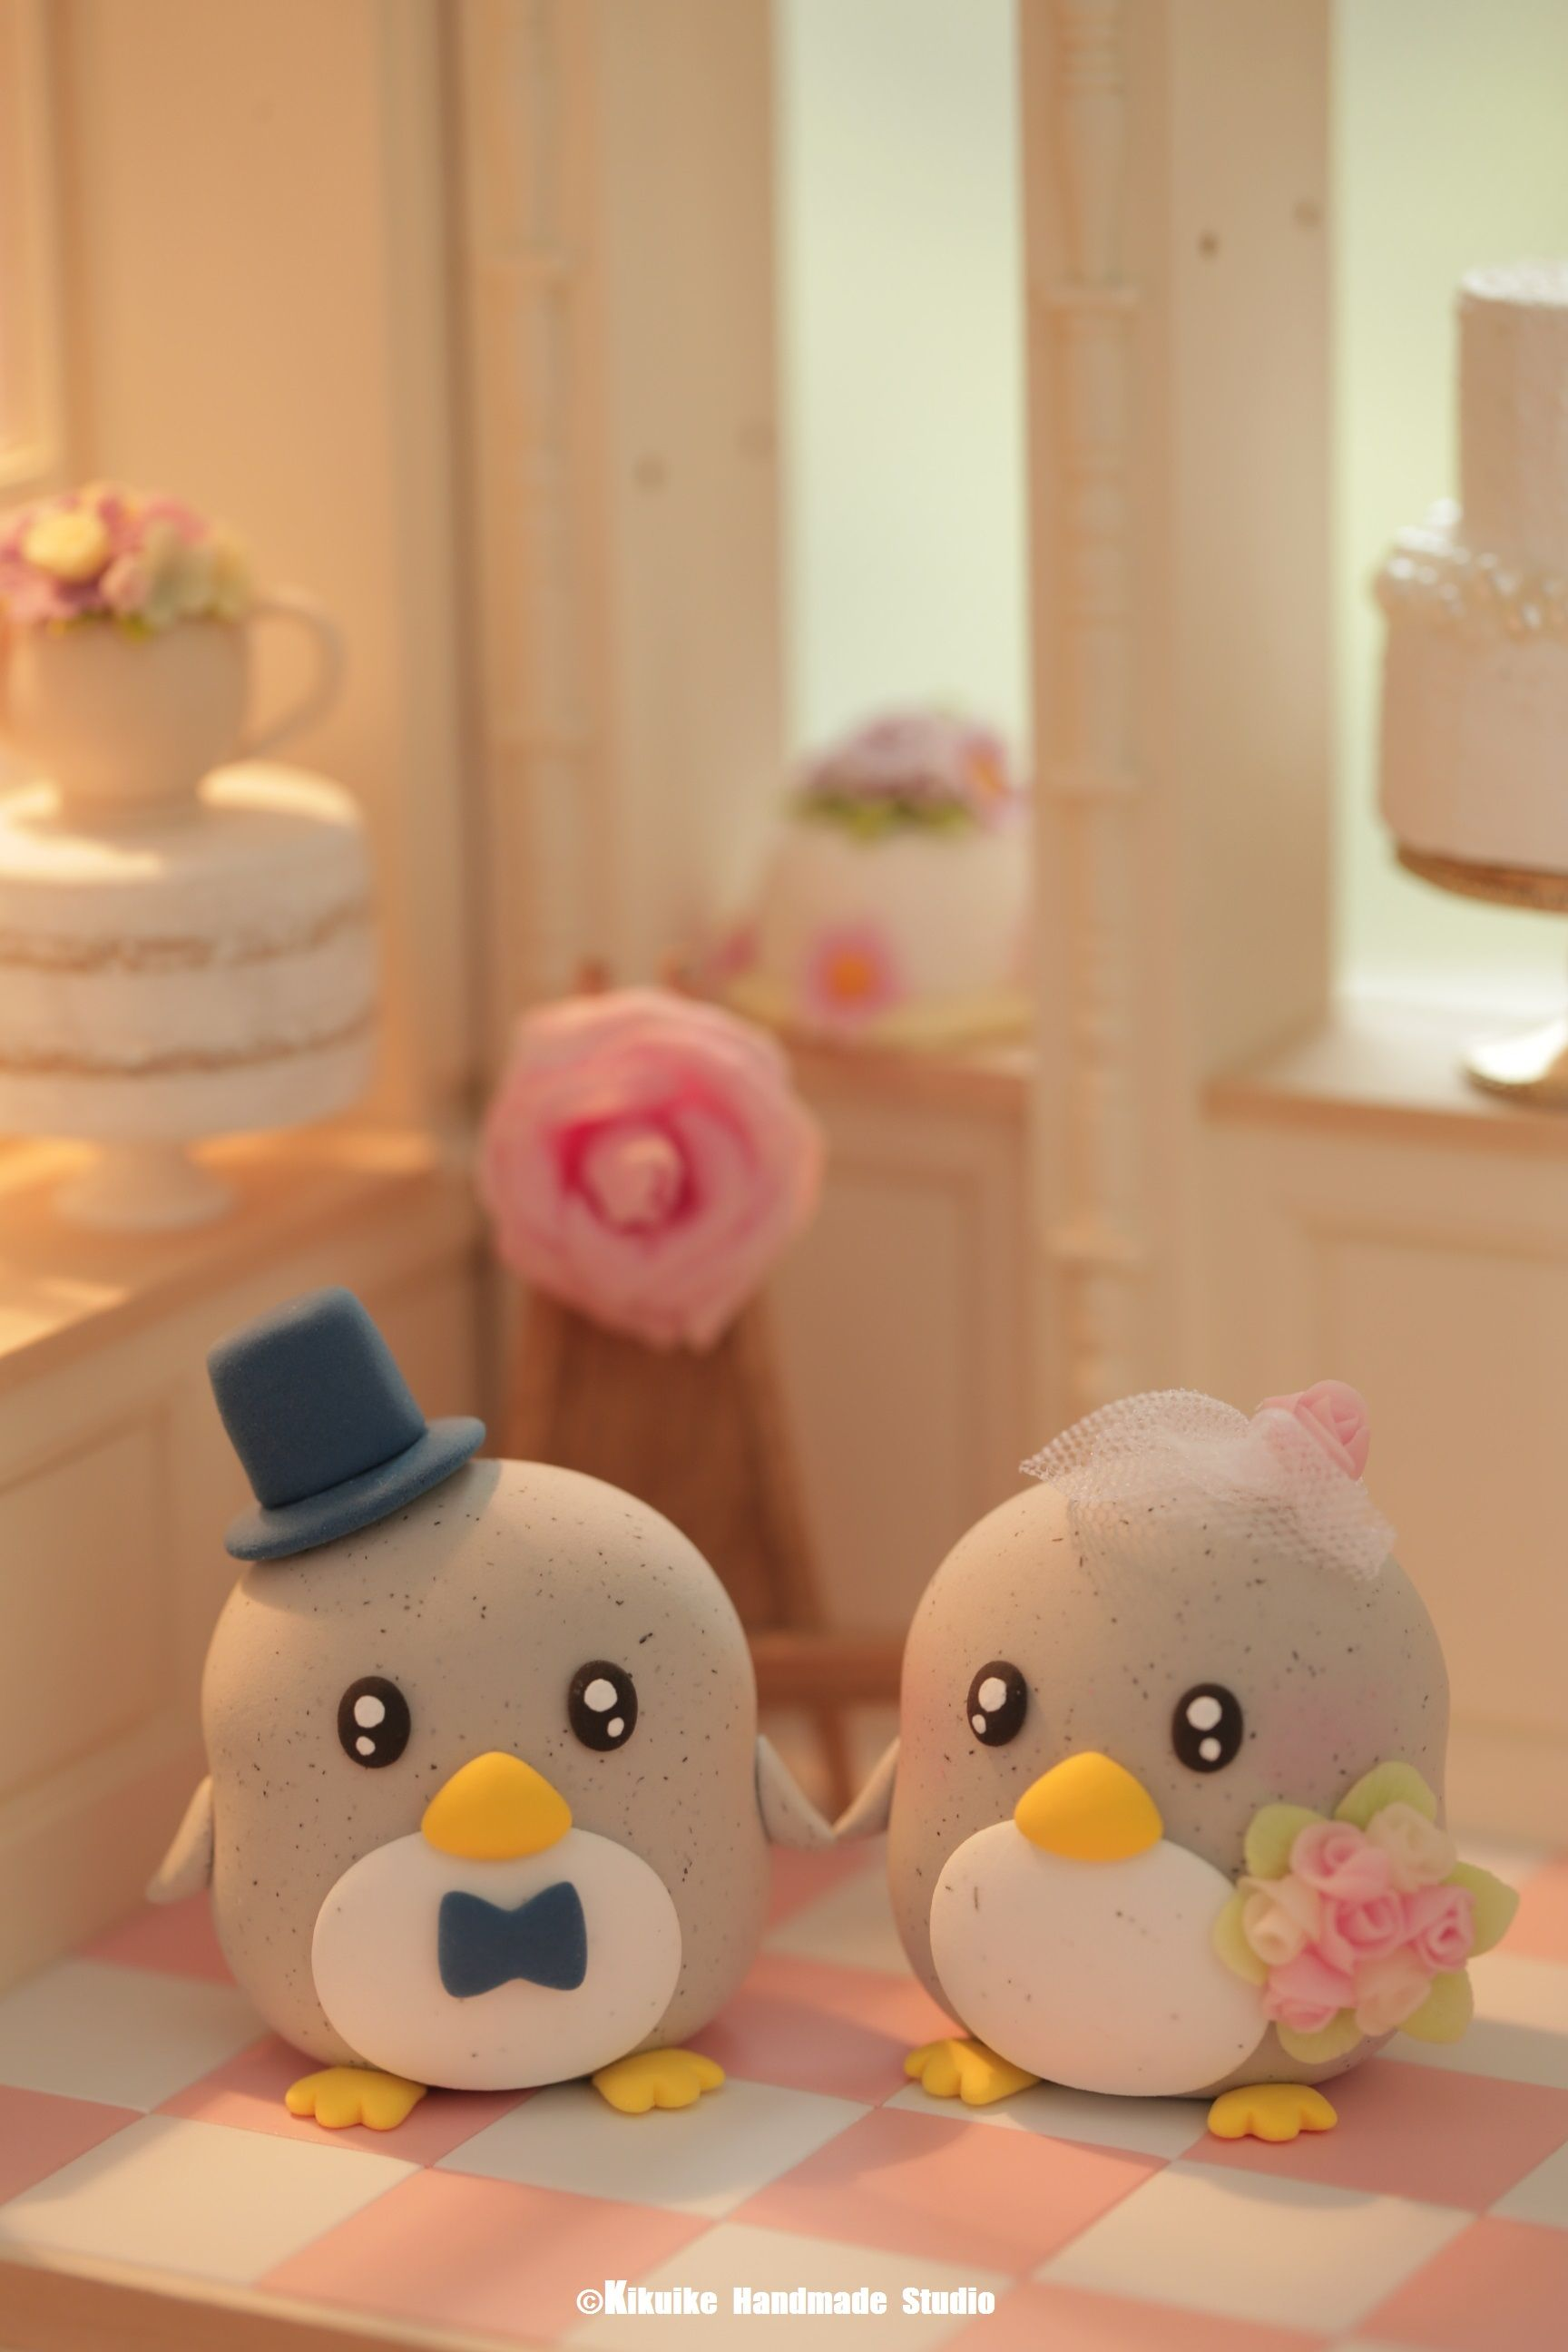 Penguin cake topperspecial edition kpenguin wedding cake